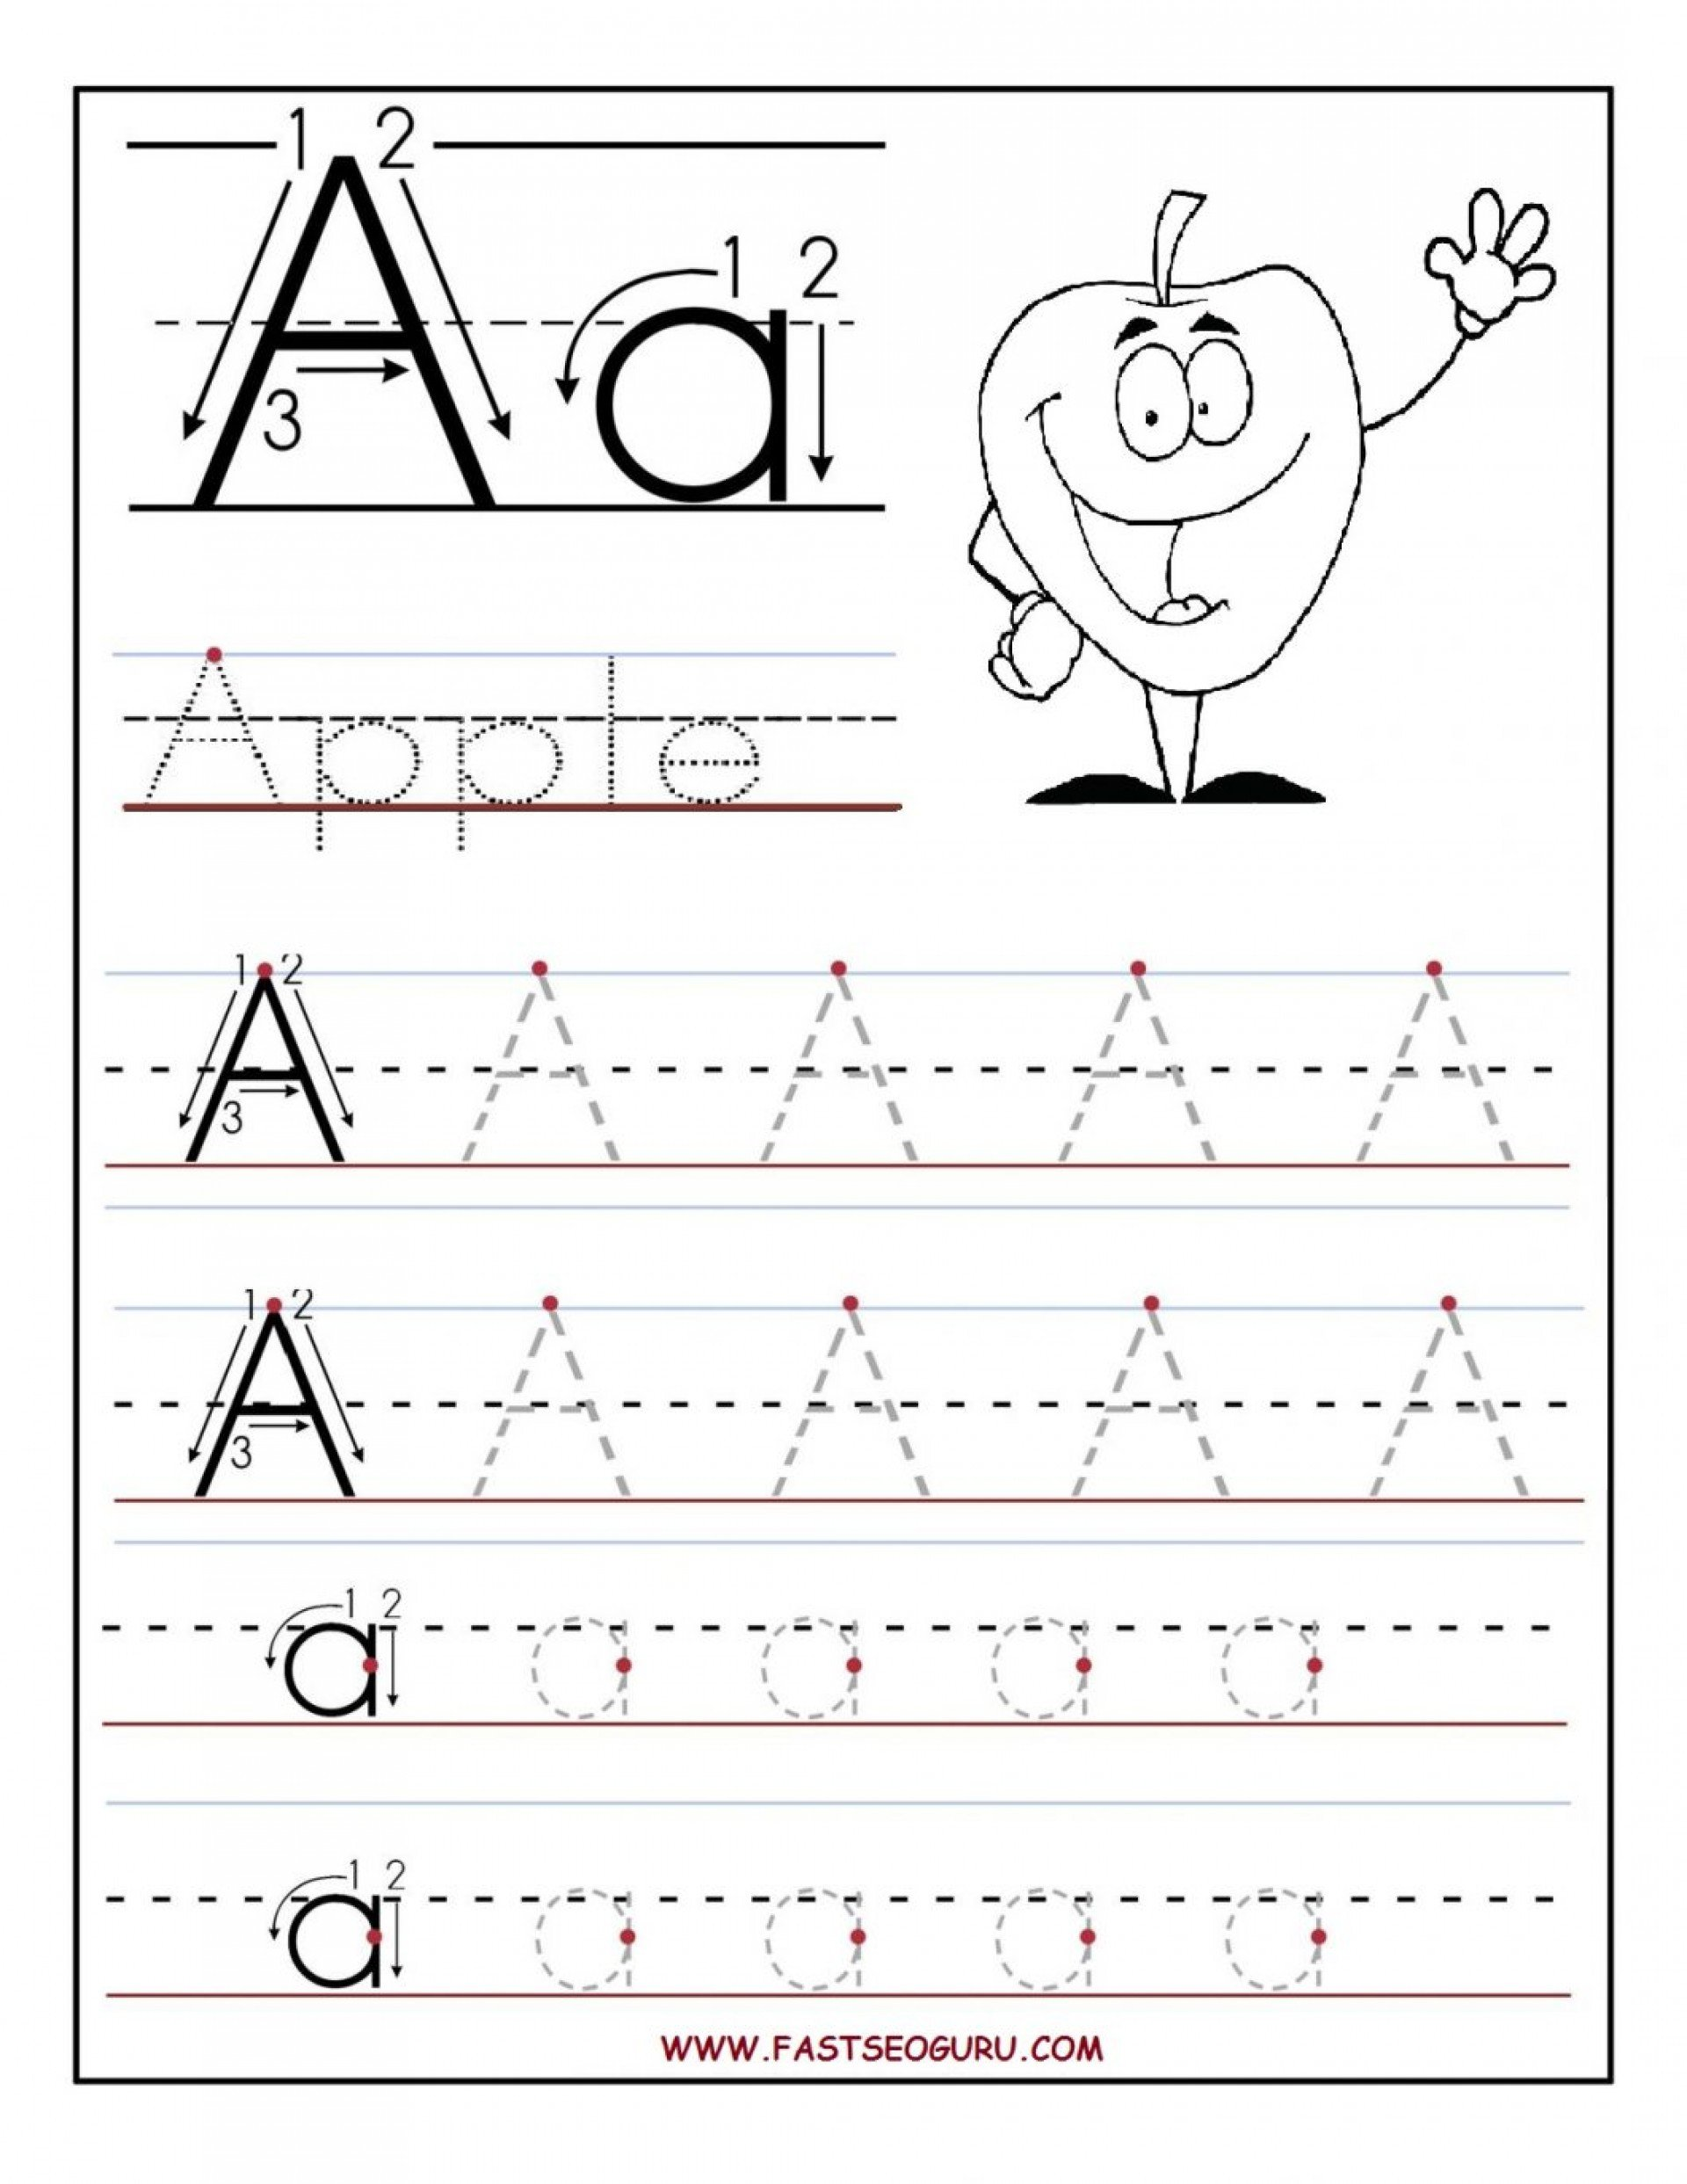 Free Letter Tracing Worksheets Pdf Anniessodasaloon Page 24 Free Handwriting Free Handwriting